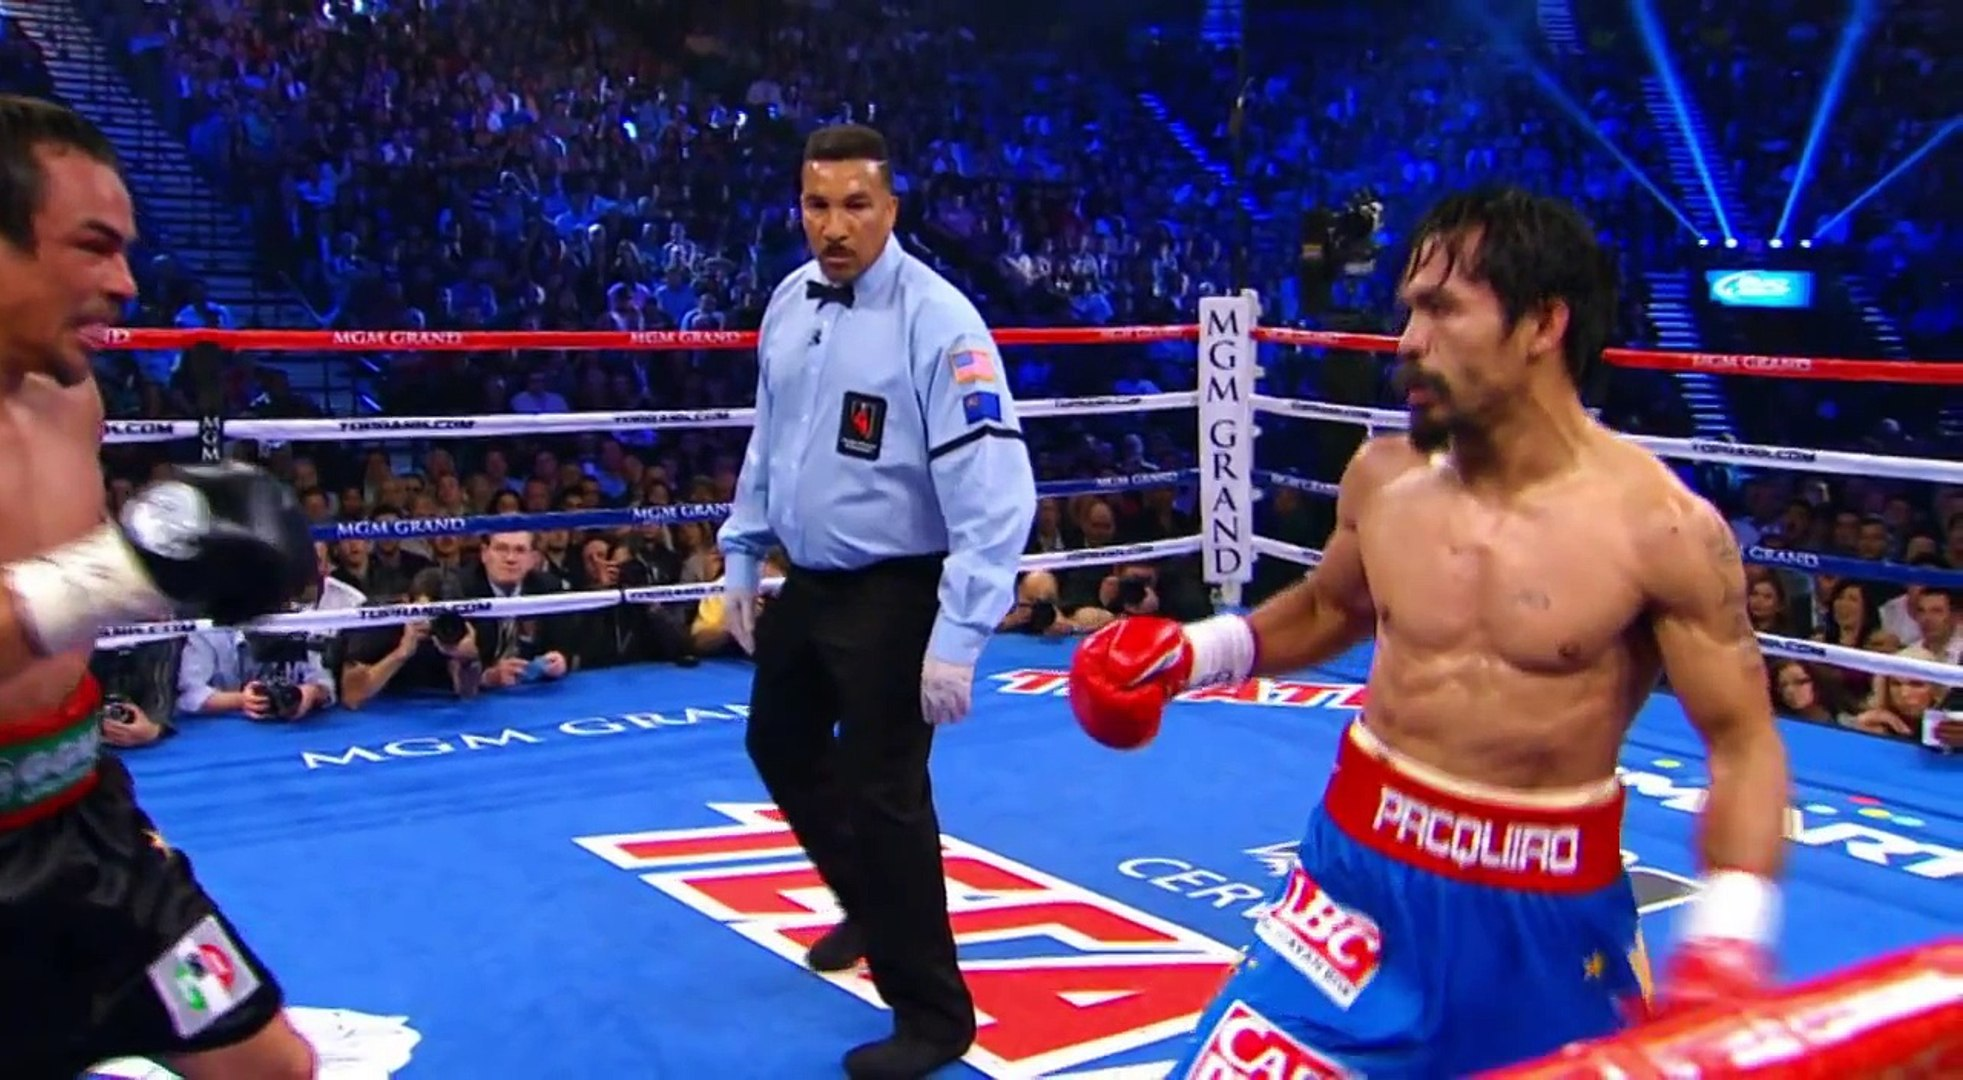 Pacquiao-Marquez 4: HBO Boxing - Look Back at 3rd Fight (HBO Boxing)